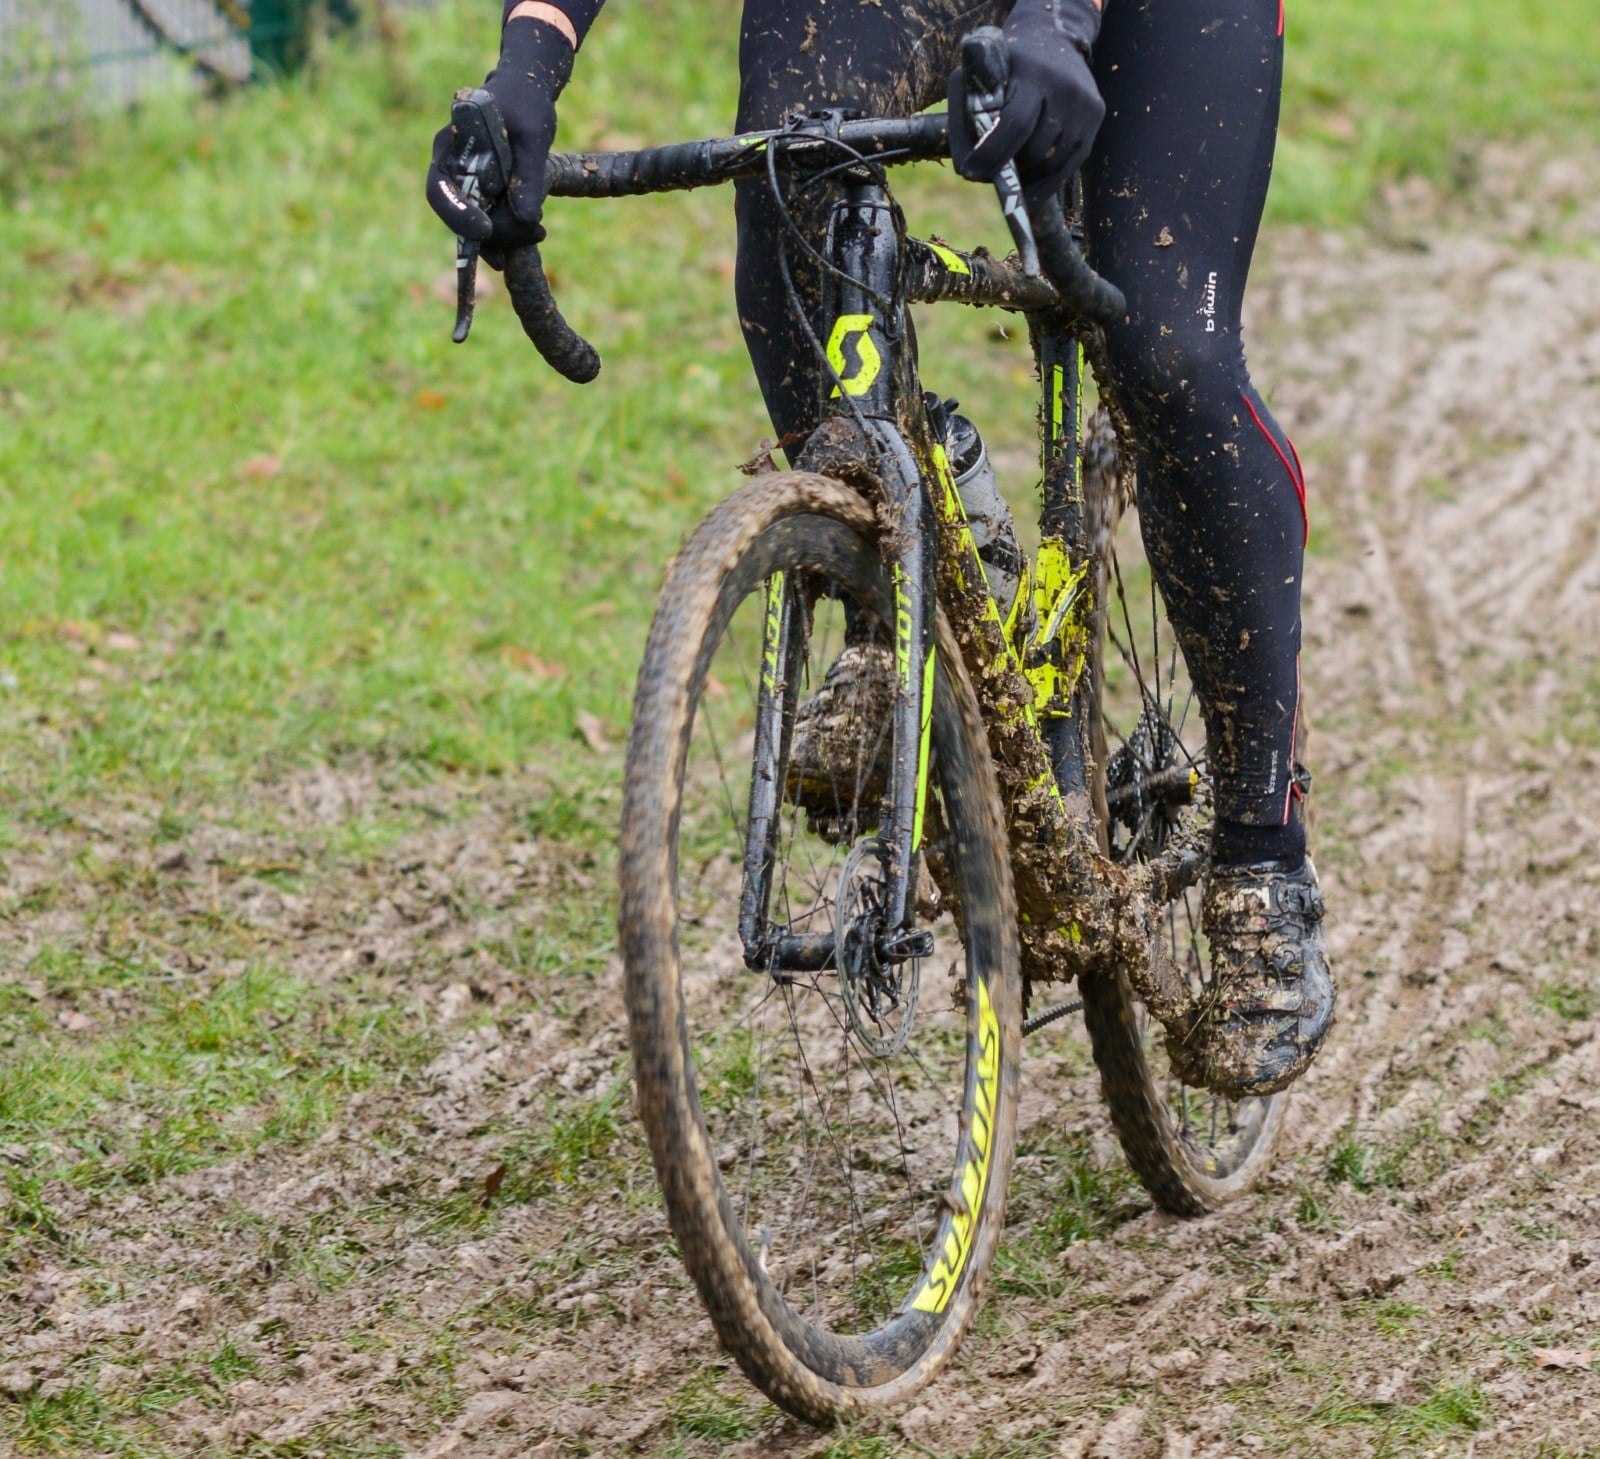 Un cyclo-cross plein de boue